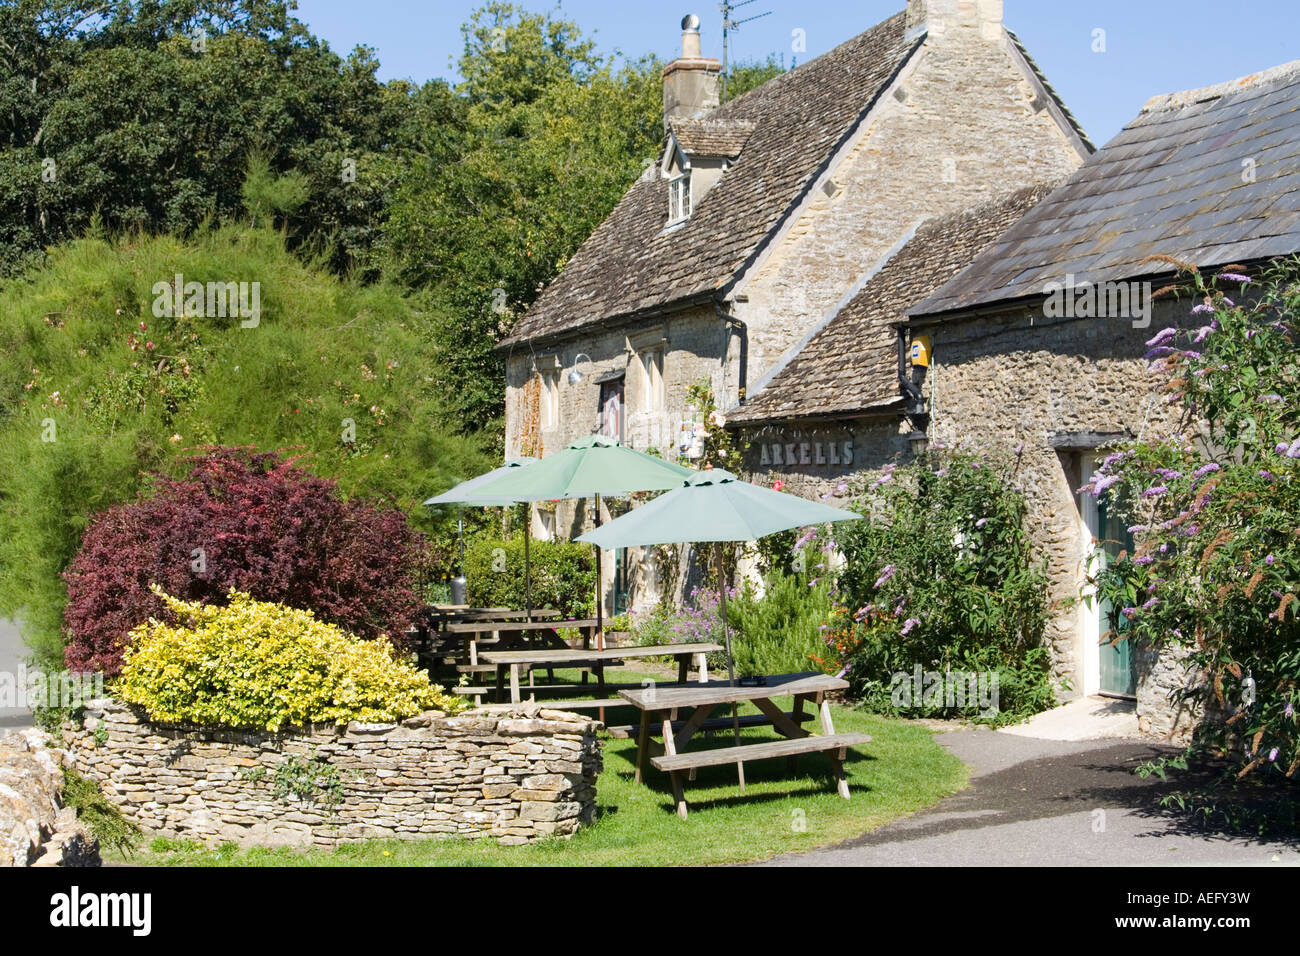 The Victoria Inn in the Cotswold village of Eastleach Turville, Gloucestershire - Stock Image